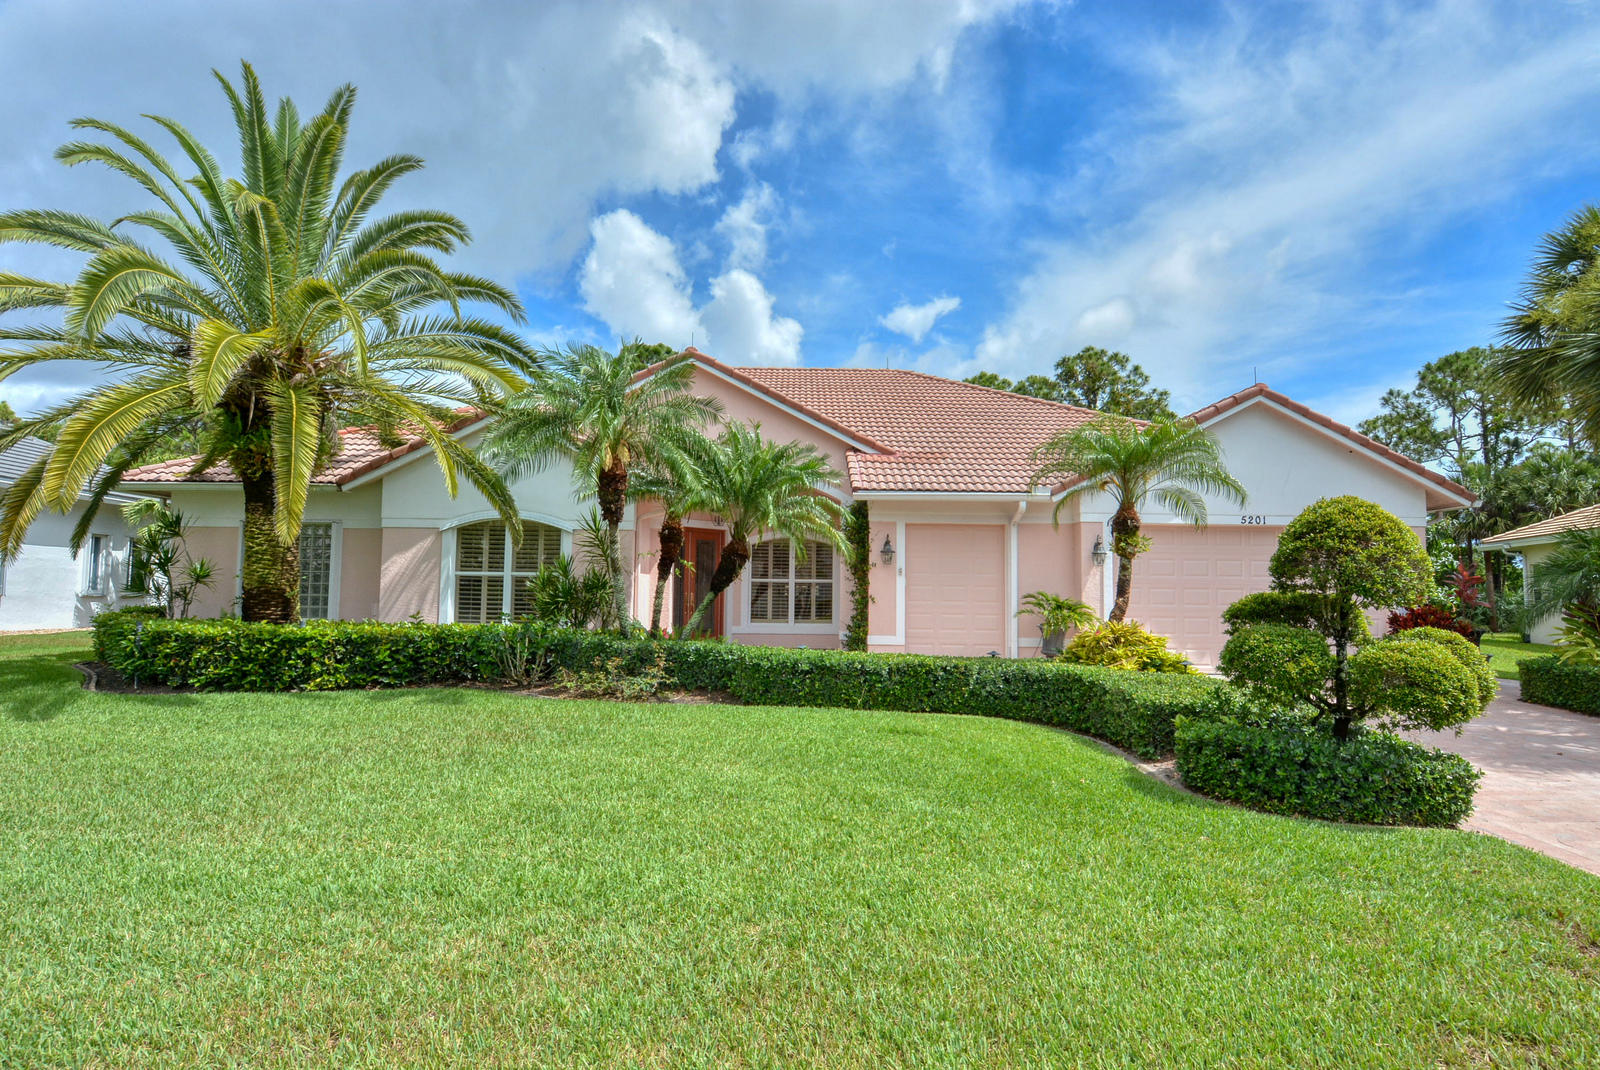 Home for sale in LOST LAKE AT HOBE SOUND A PUD A PLAT OF Hobe Sound Florida